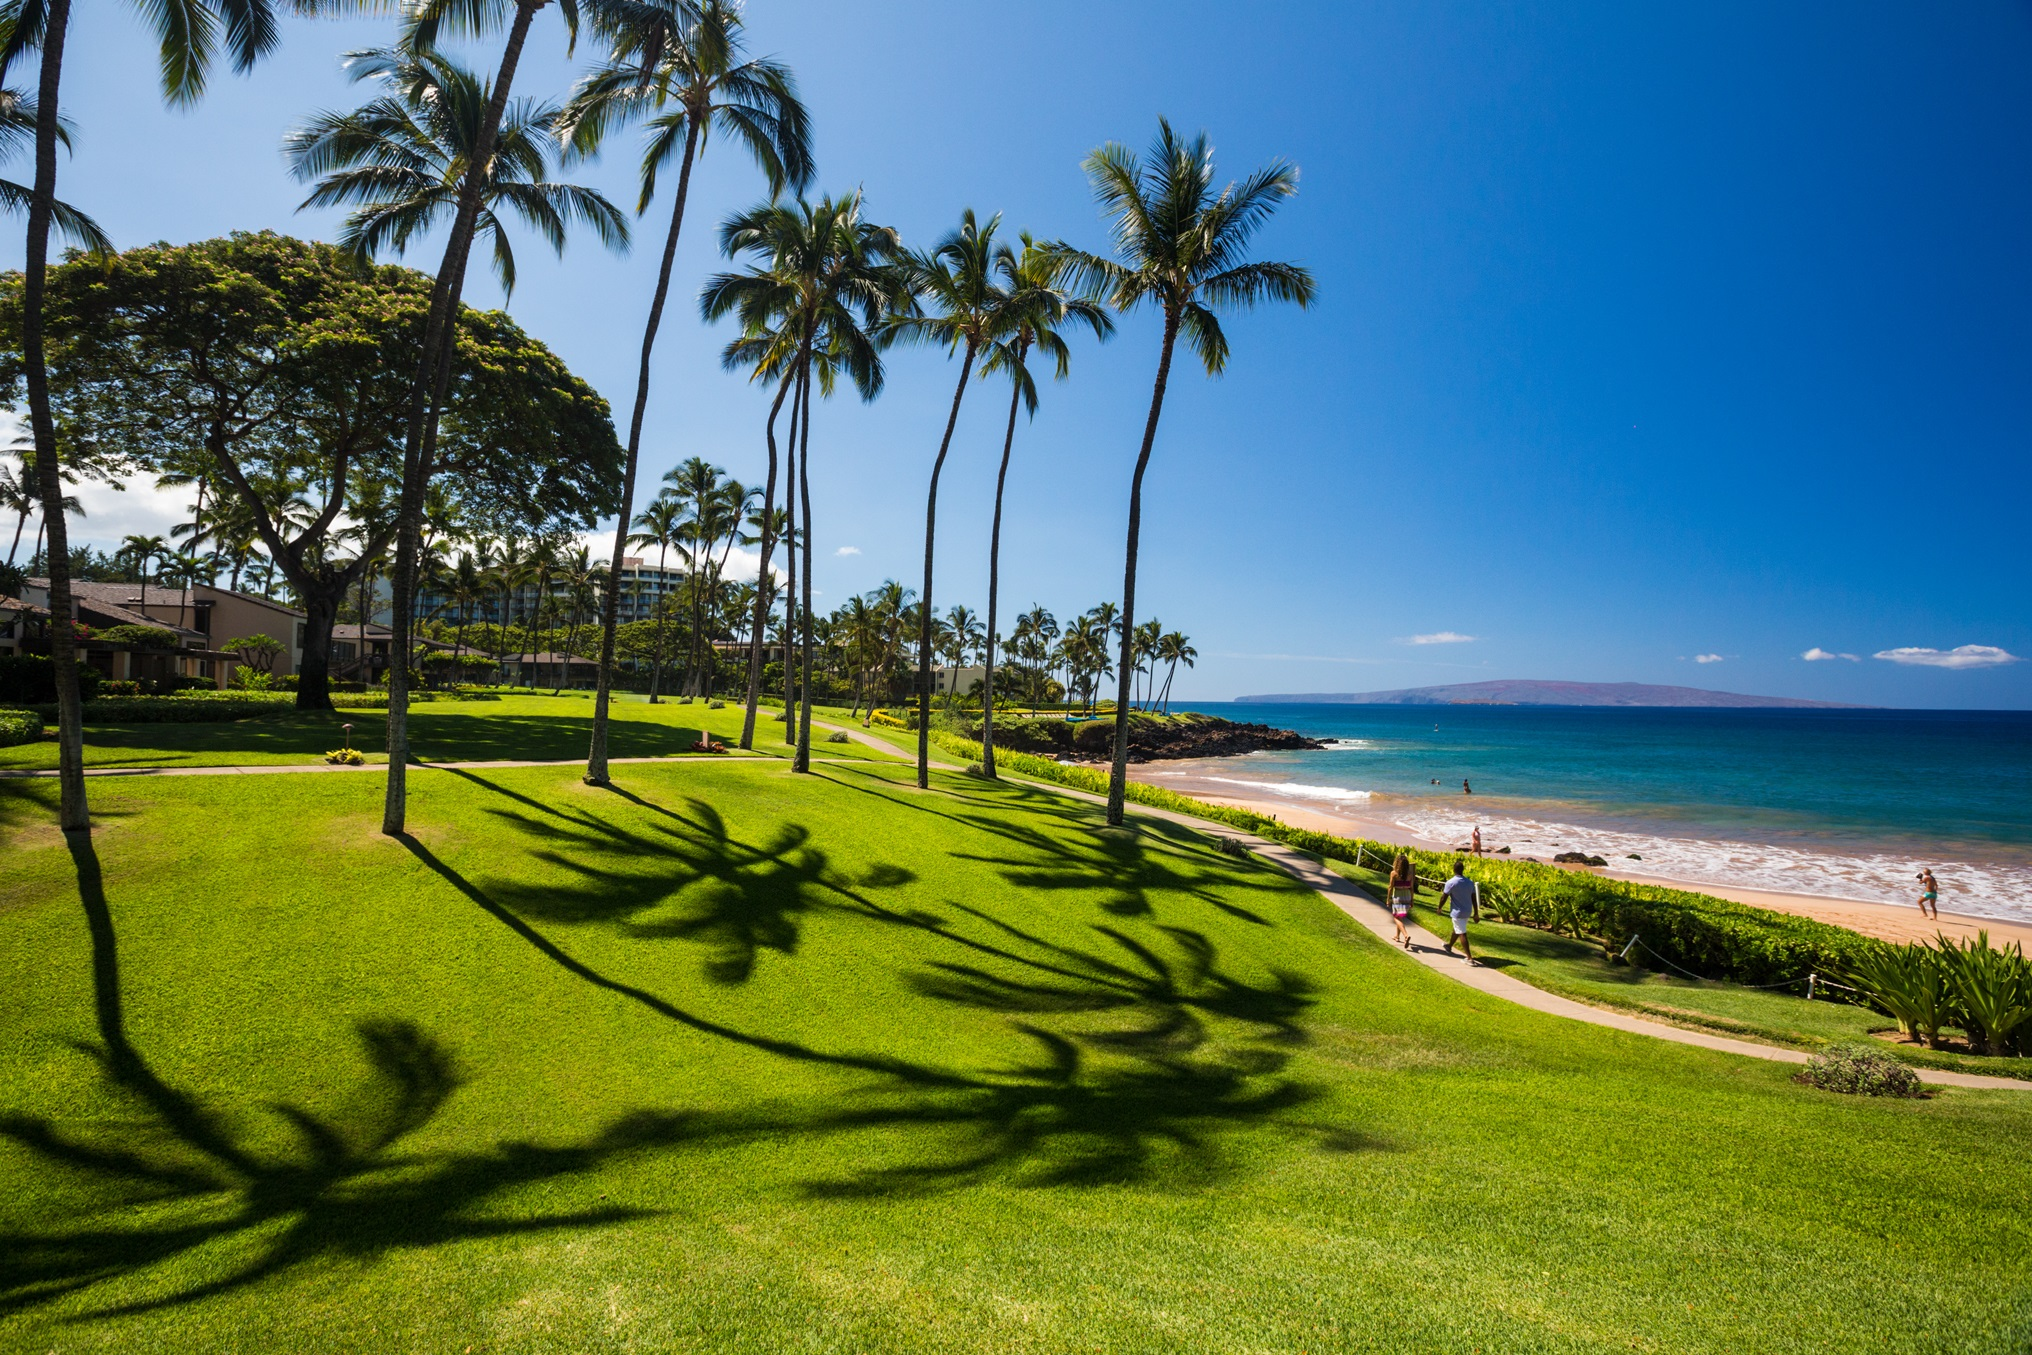 Maui, Hawaii - Canadian Snowbird Destination Guide